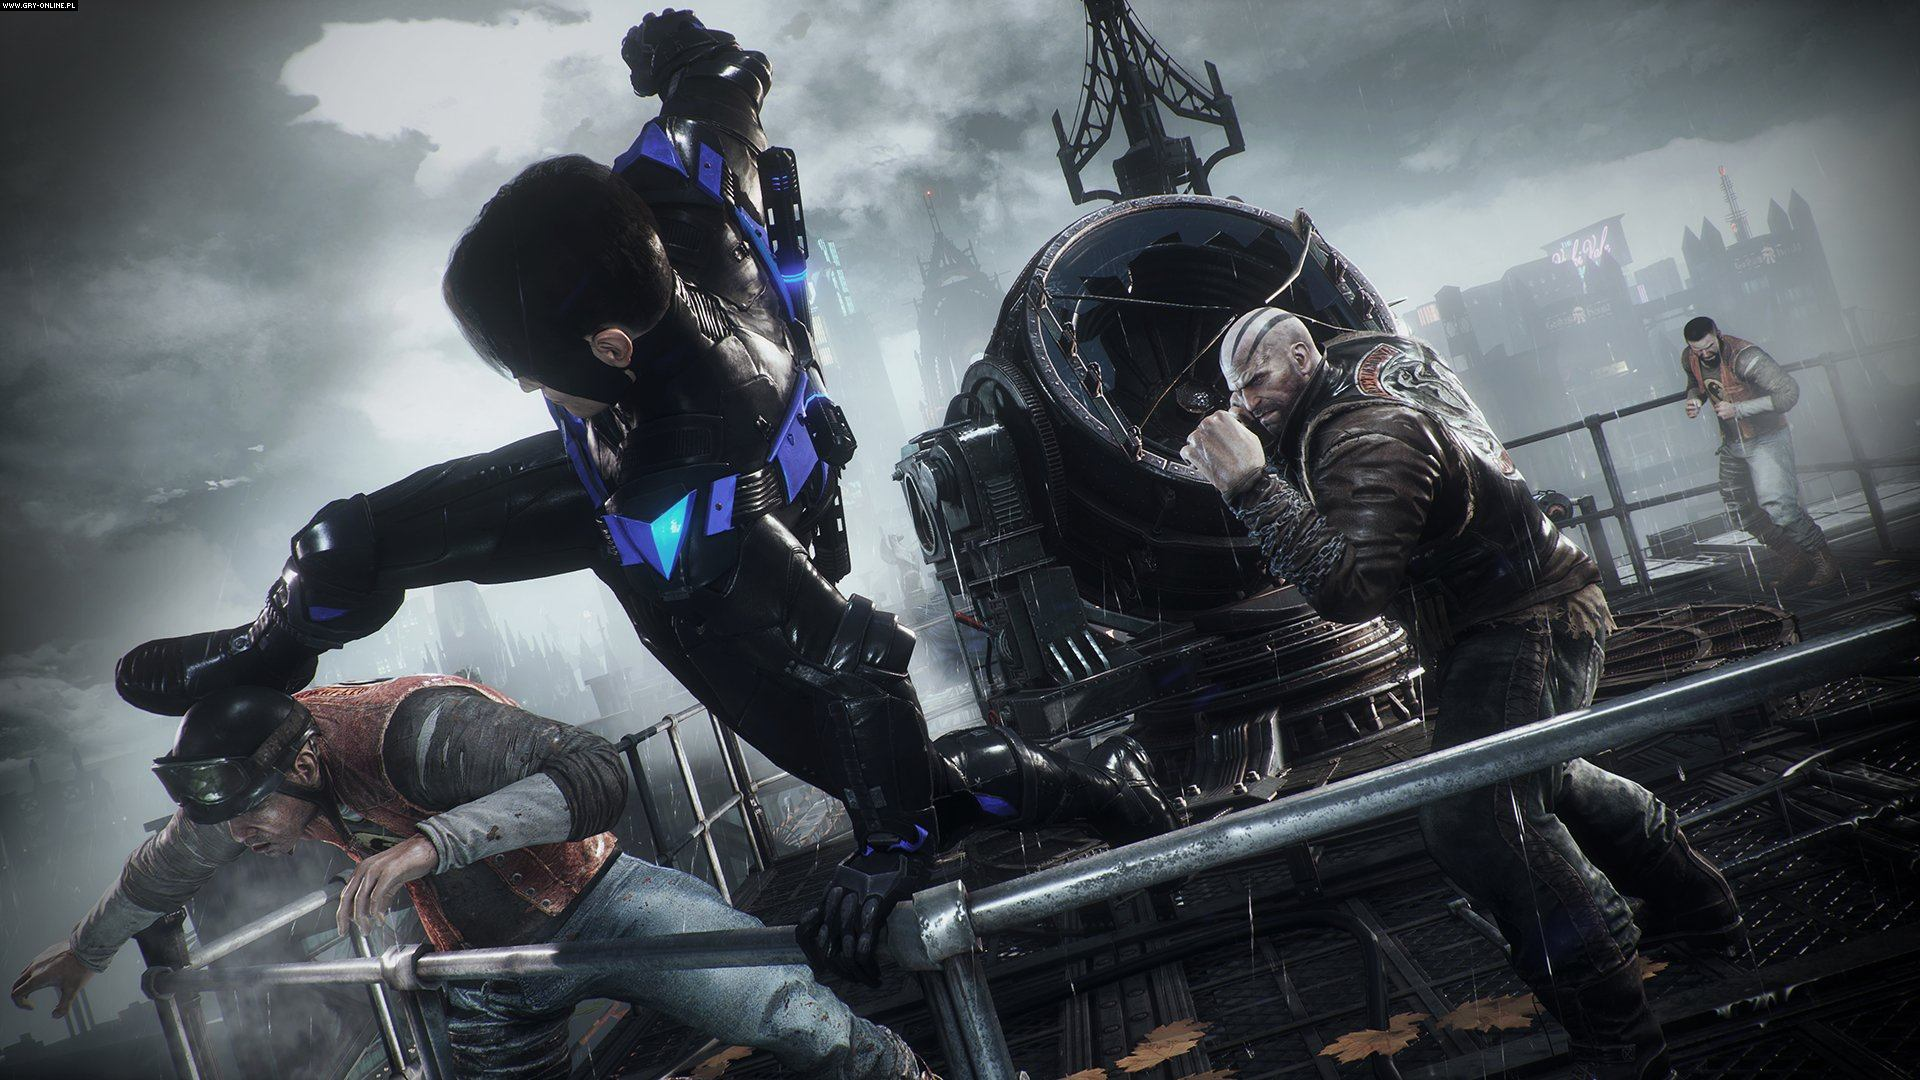 Batman Arkham Knight image #2